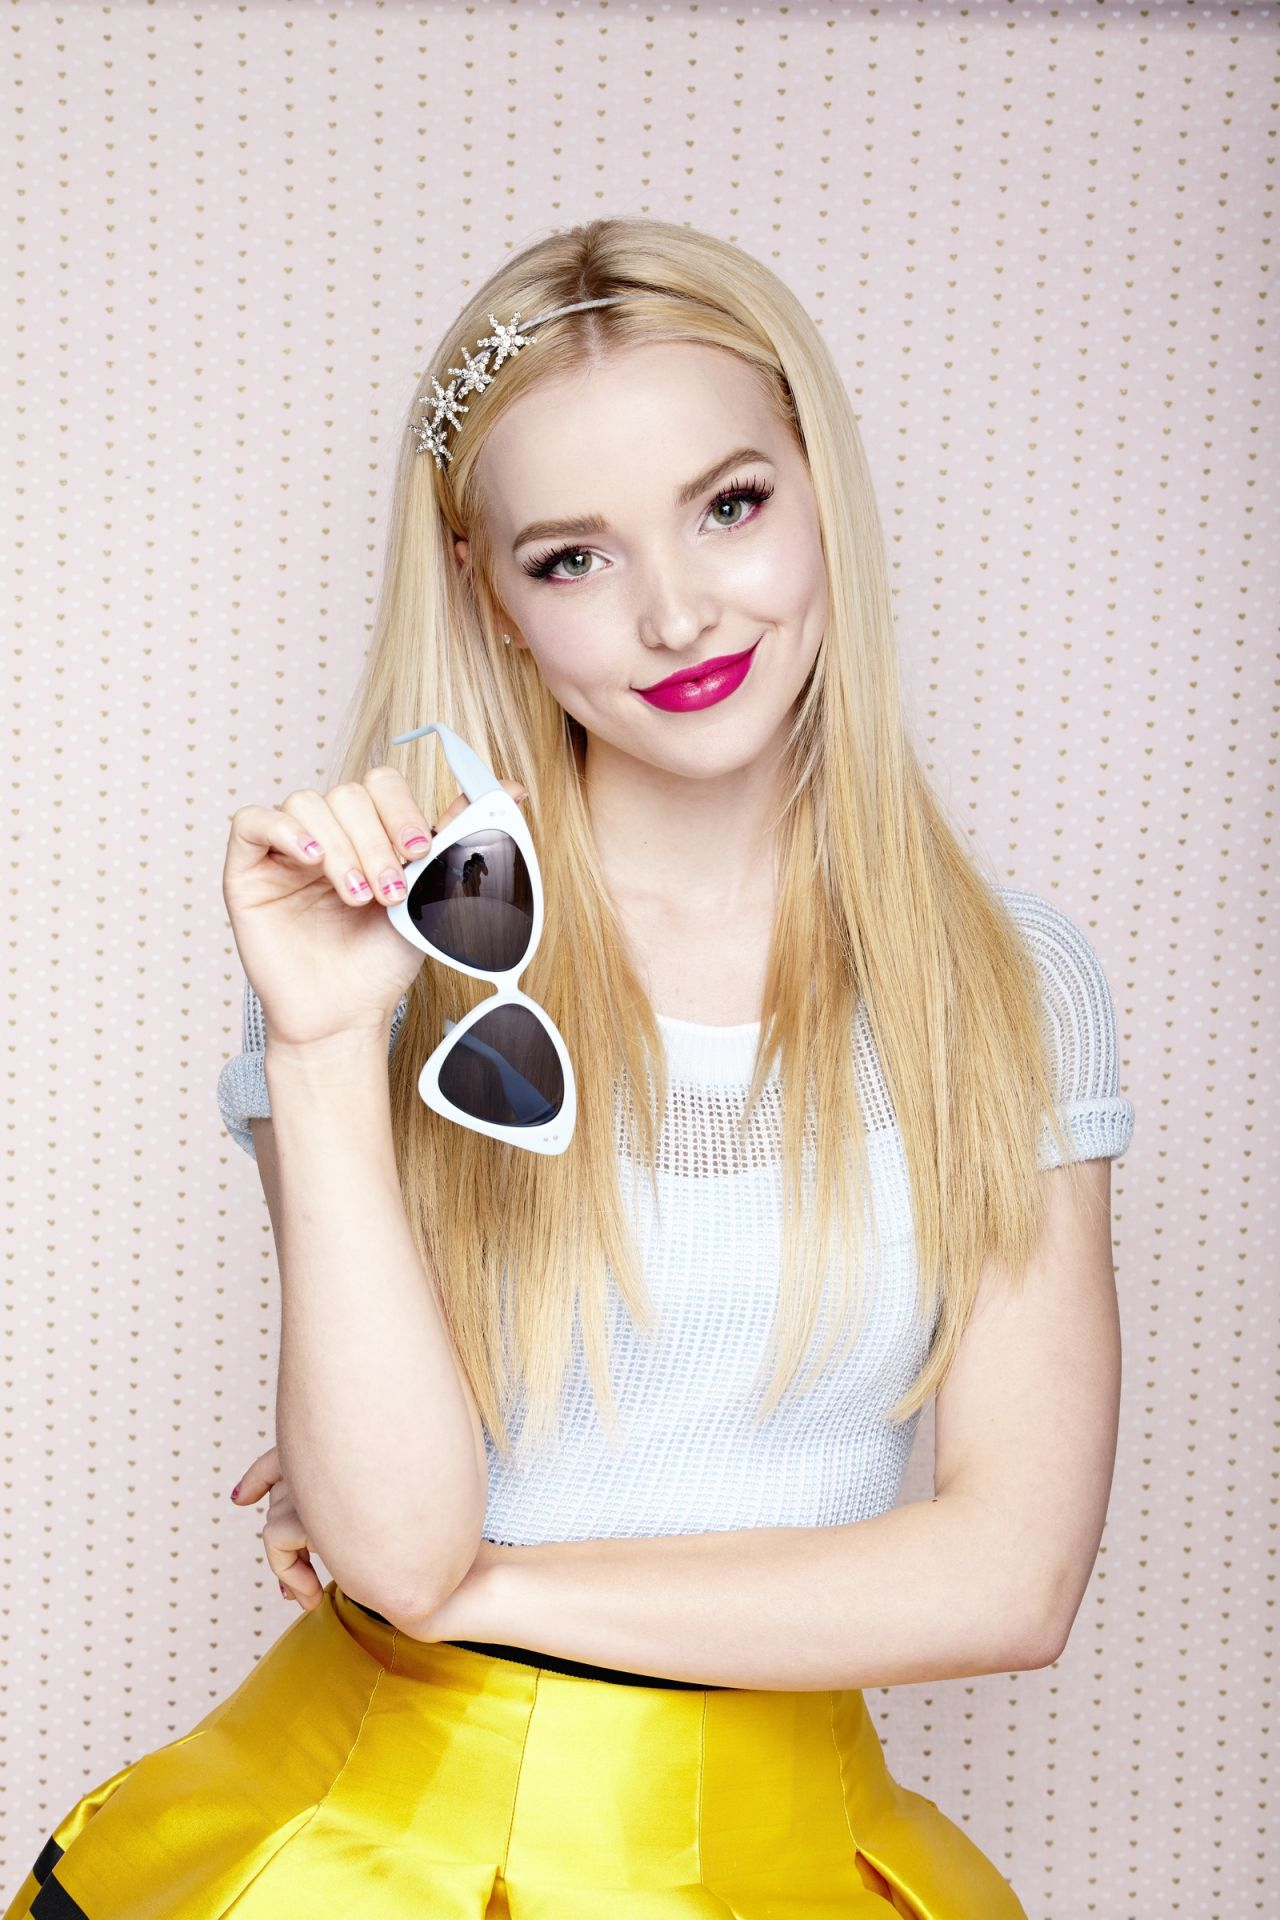 Dove Cameron sunglasses - Dove Cameron Net Worth, Movies, Family, Boyfriend, Pictures and Wallpapers